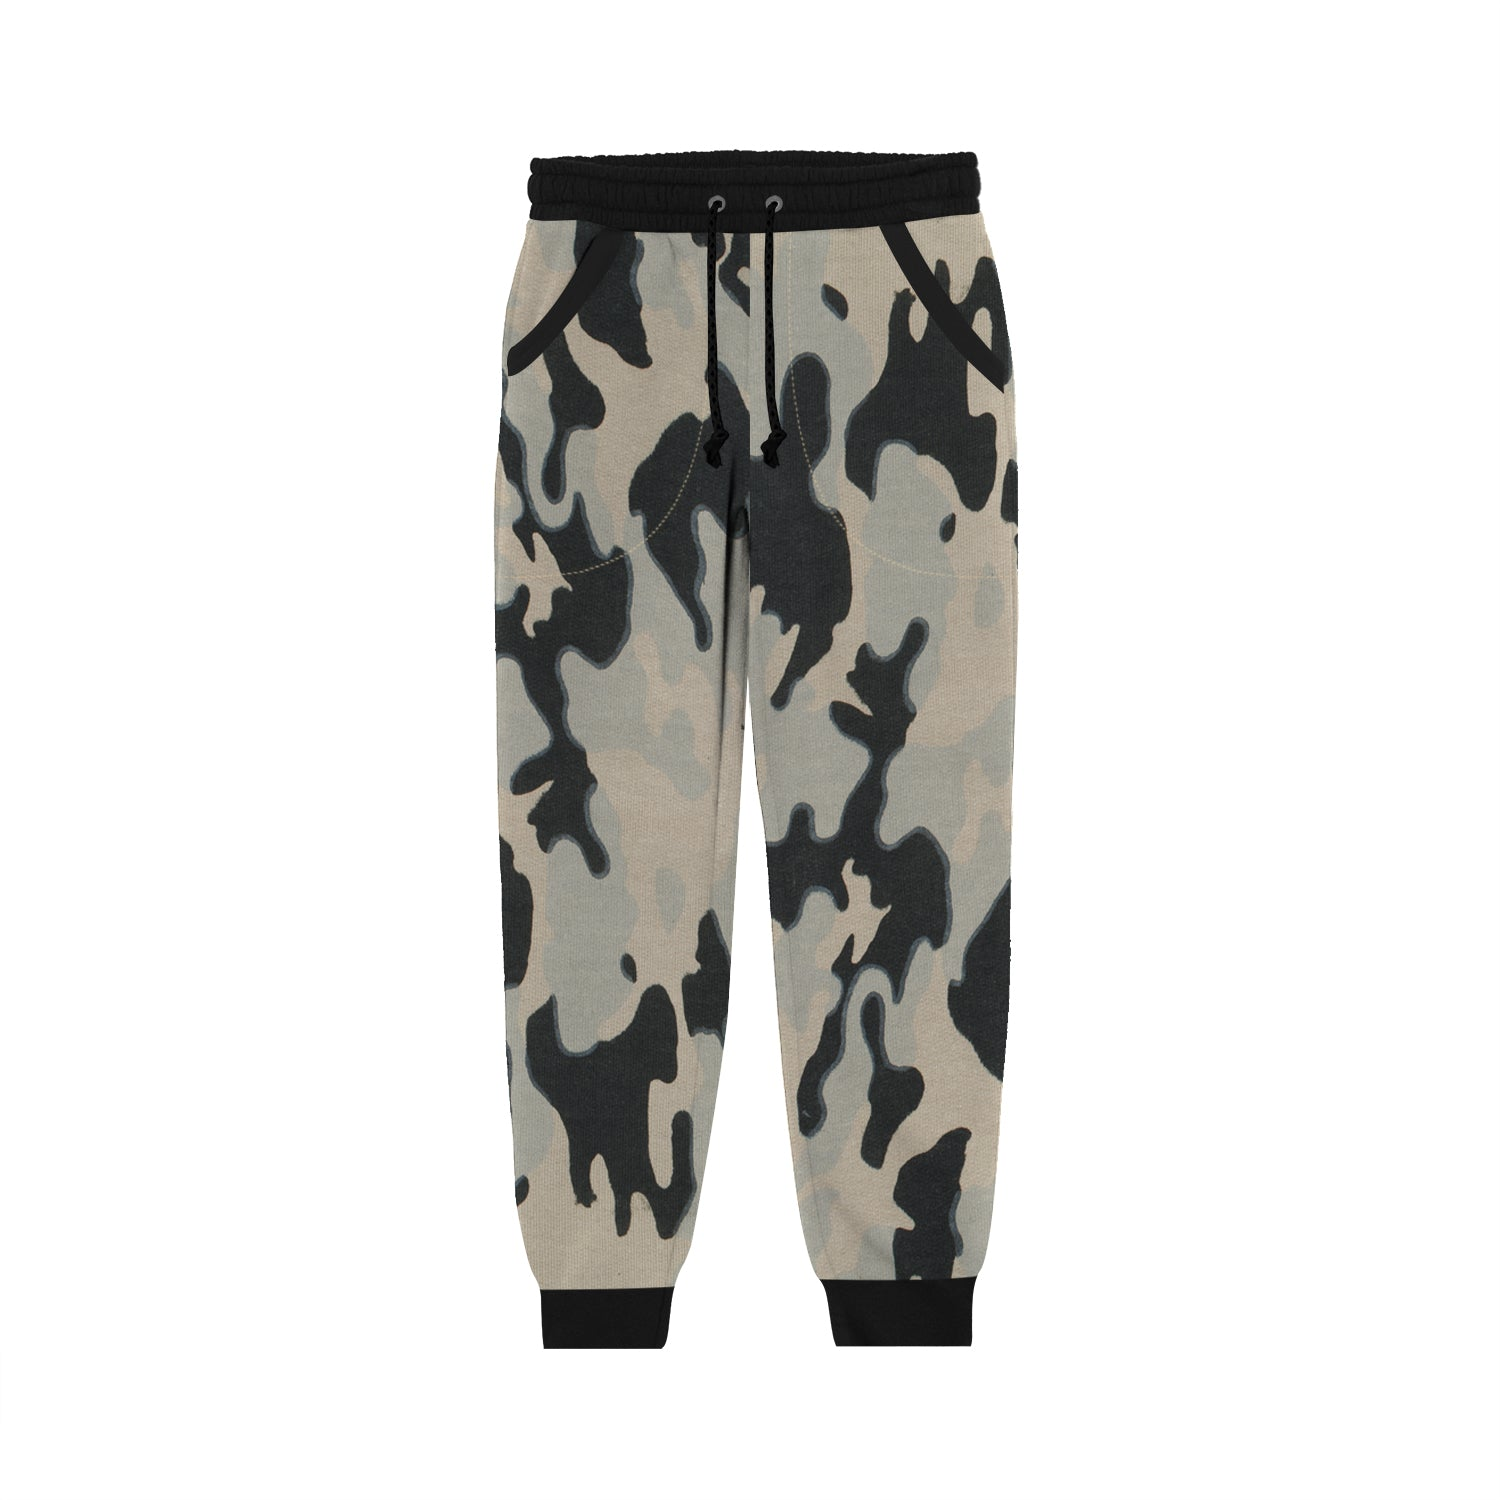 Next Terry Fleece Slim Fit Jogger Trouser For Kids-Skin with Allover Camouflage Print-BE13376